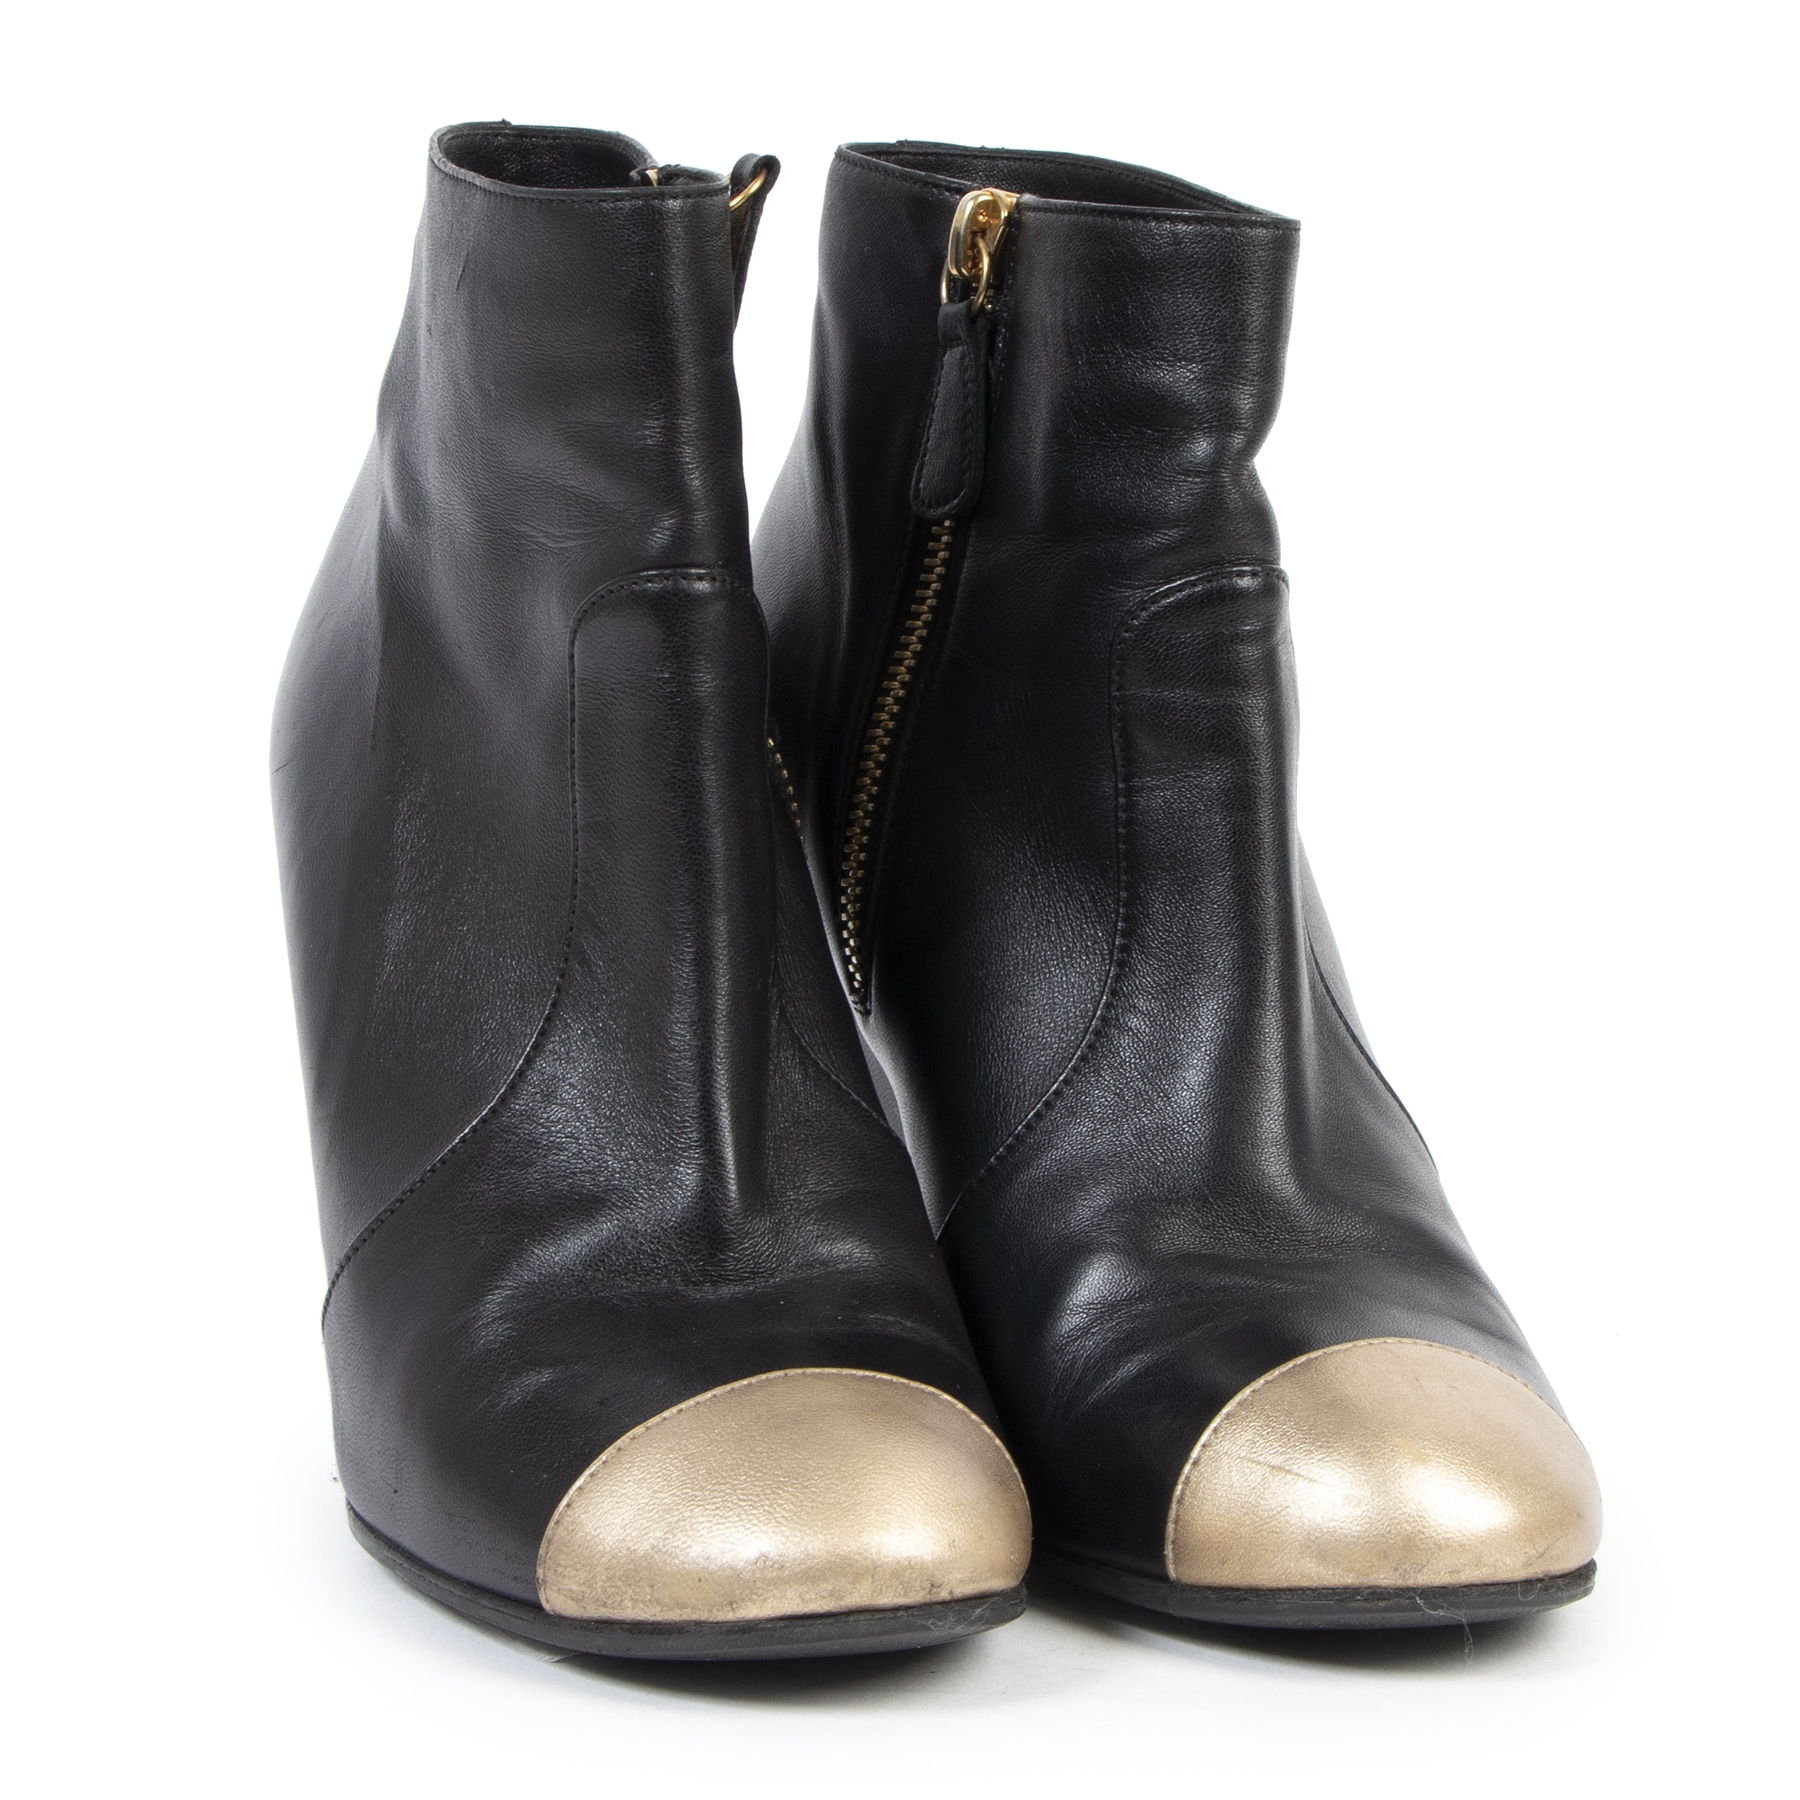 Authentic secondhand Chanel Black Leather Wedge Boots Gold Toe - Size 37  designer shoes high heels ankle boots fashion luxury vintage webshop safe secure online shopping